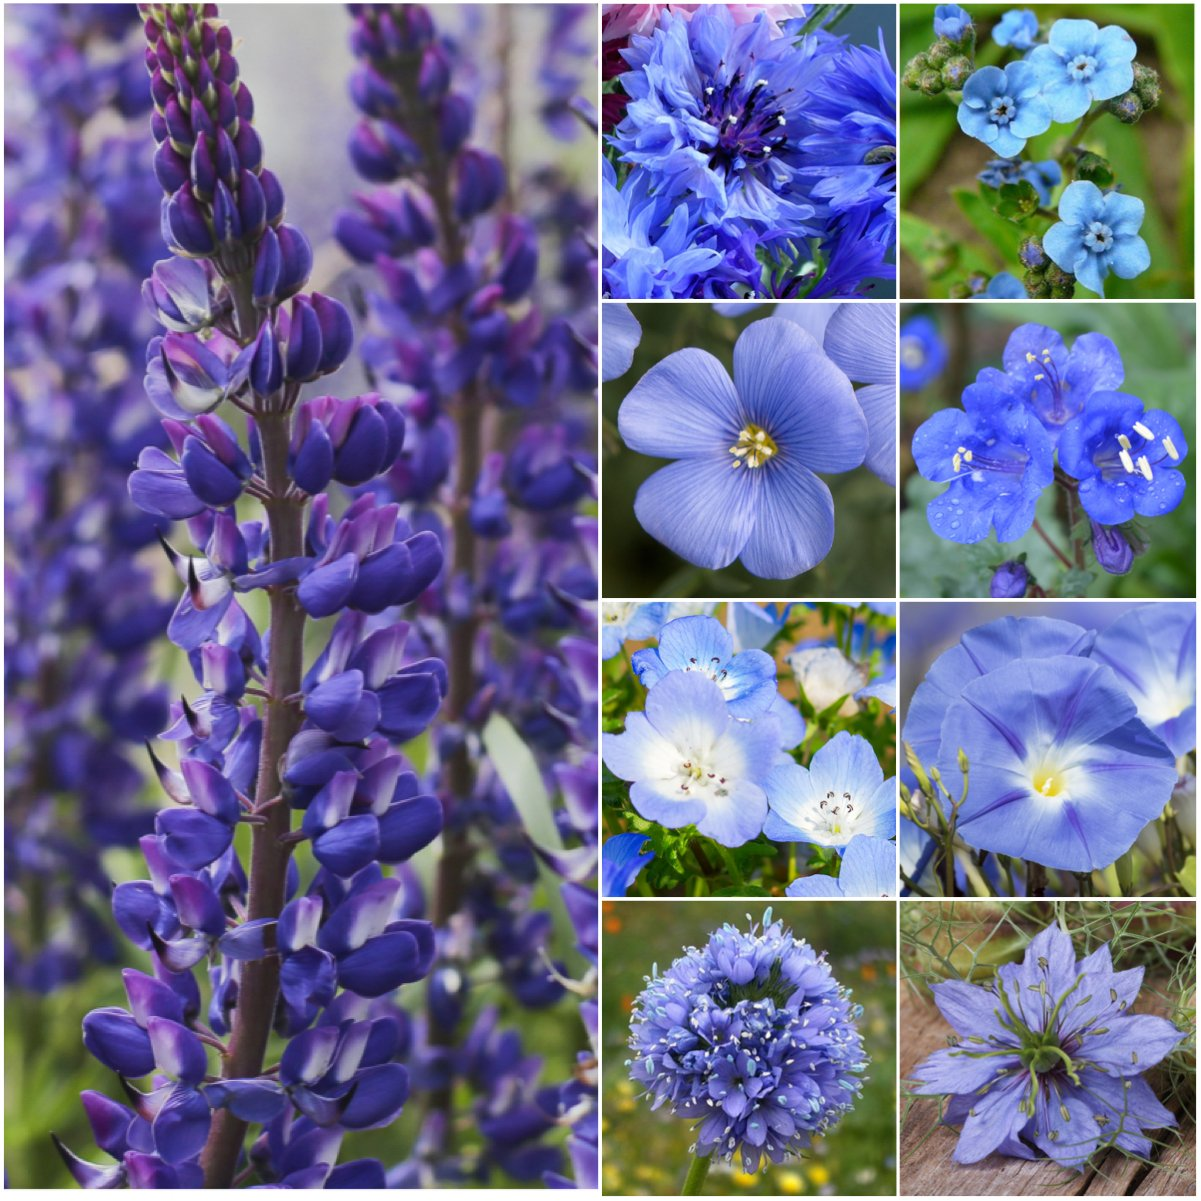 Bulk Package of 30,000 Seeds, Wildflower Mixture''Dazzling Blue'' (99% Pure Seed - 9 Species) Seeds by Seed Needs